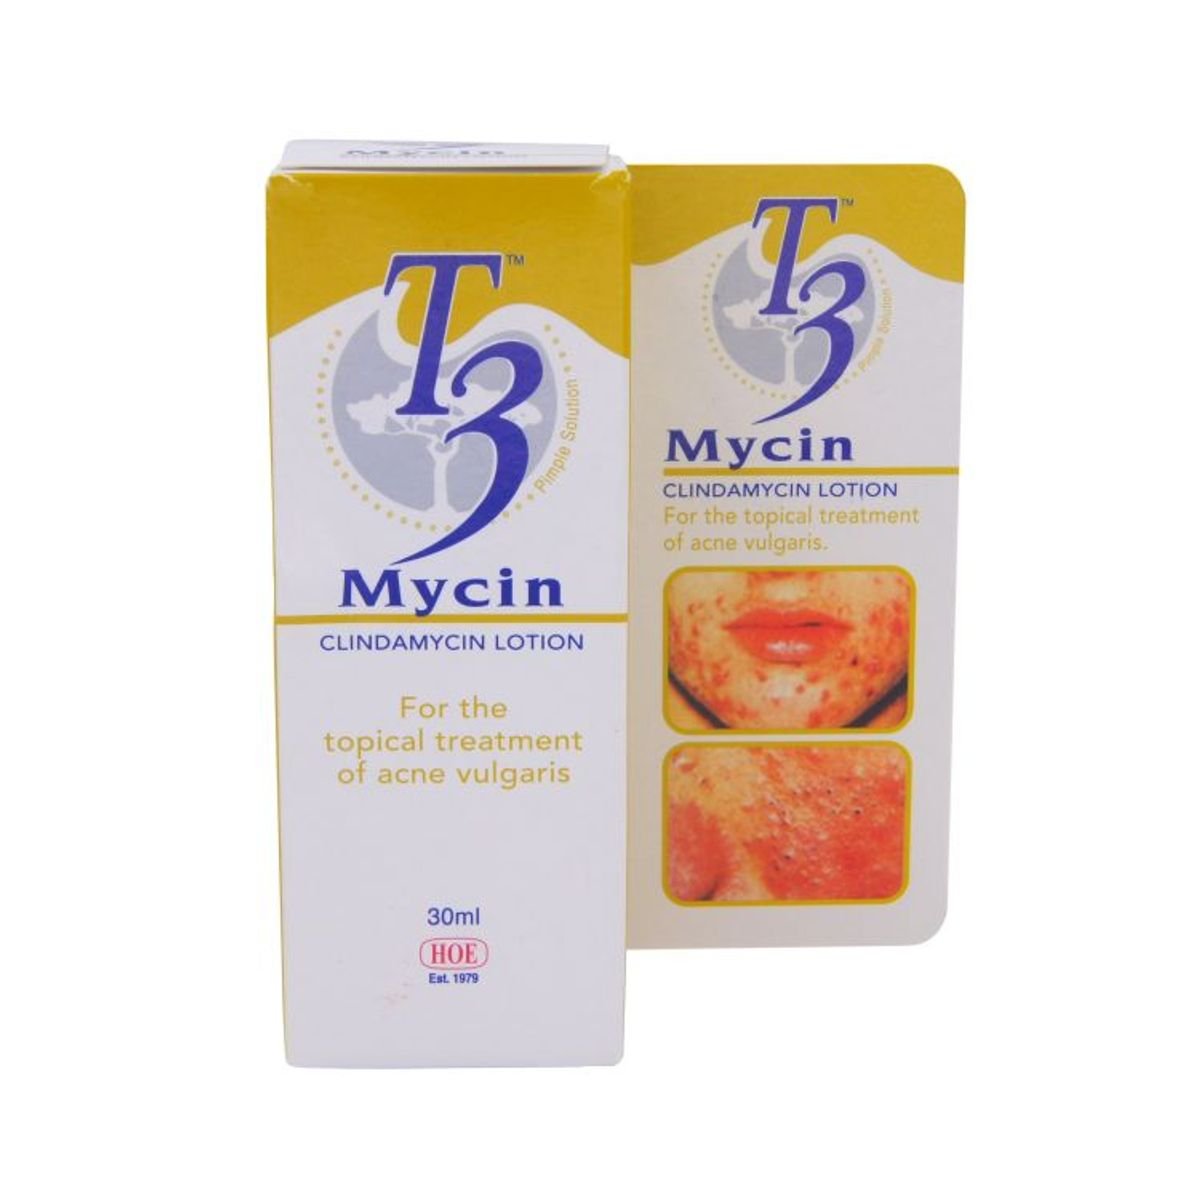 T3 Mycin 1 2% Lotion- Uses, Dosage, Side Effects,Price